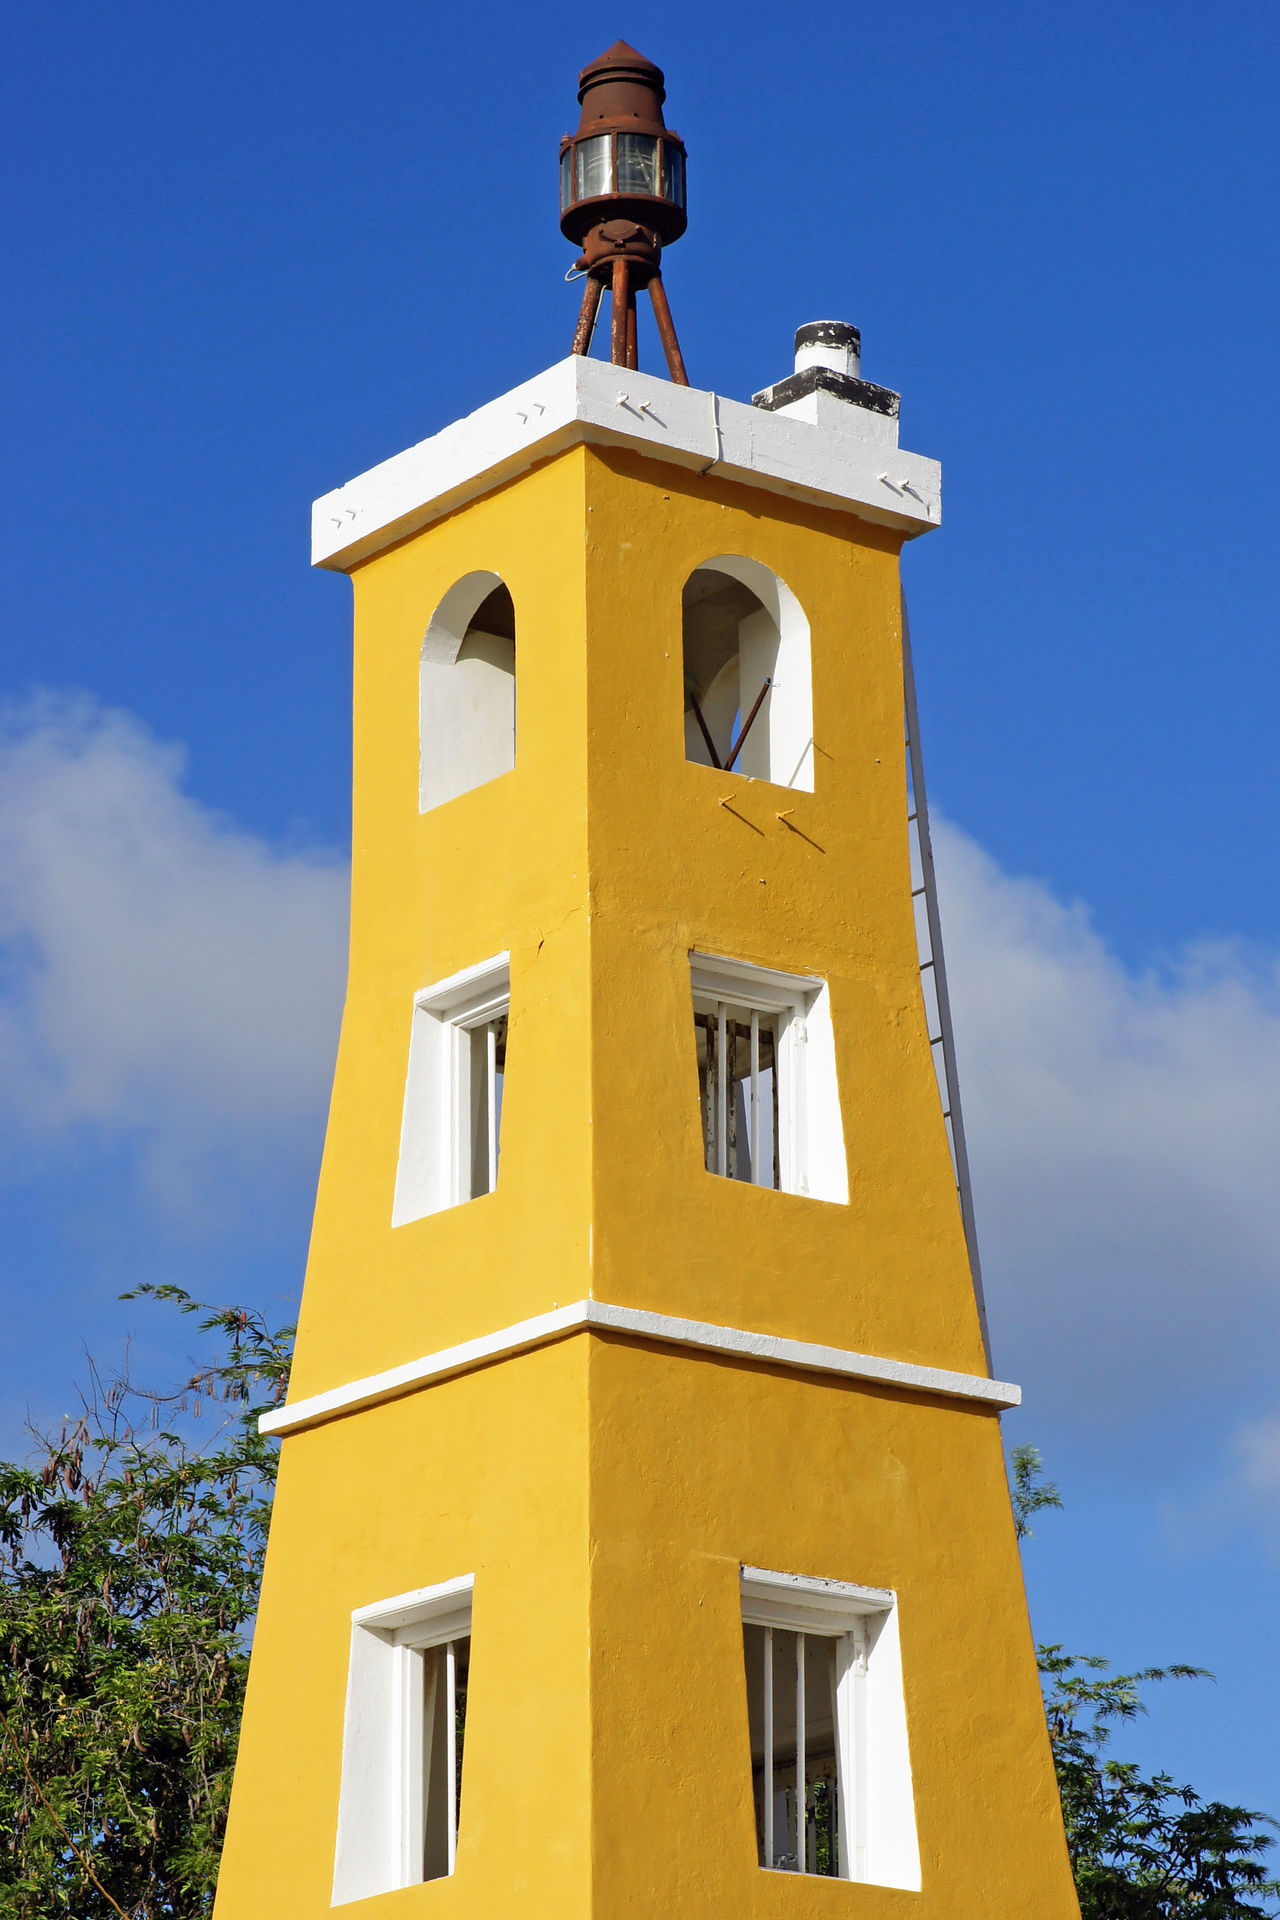 Lighthouse of Kralendijk, Bonaire, ABC Islands Abc Islands Antilles Architecture Bonaire Building Exterior Built Structure Caribbean City Coast Coastline Day Dutch Antilles Kralendijk Leeward Islands Lighthouse No People Outdoors Sights Sightseeing Tourism Tourist Attraction  Town Travel Travel Destinations West Indies